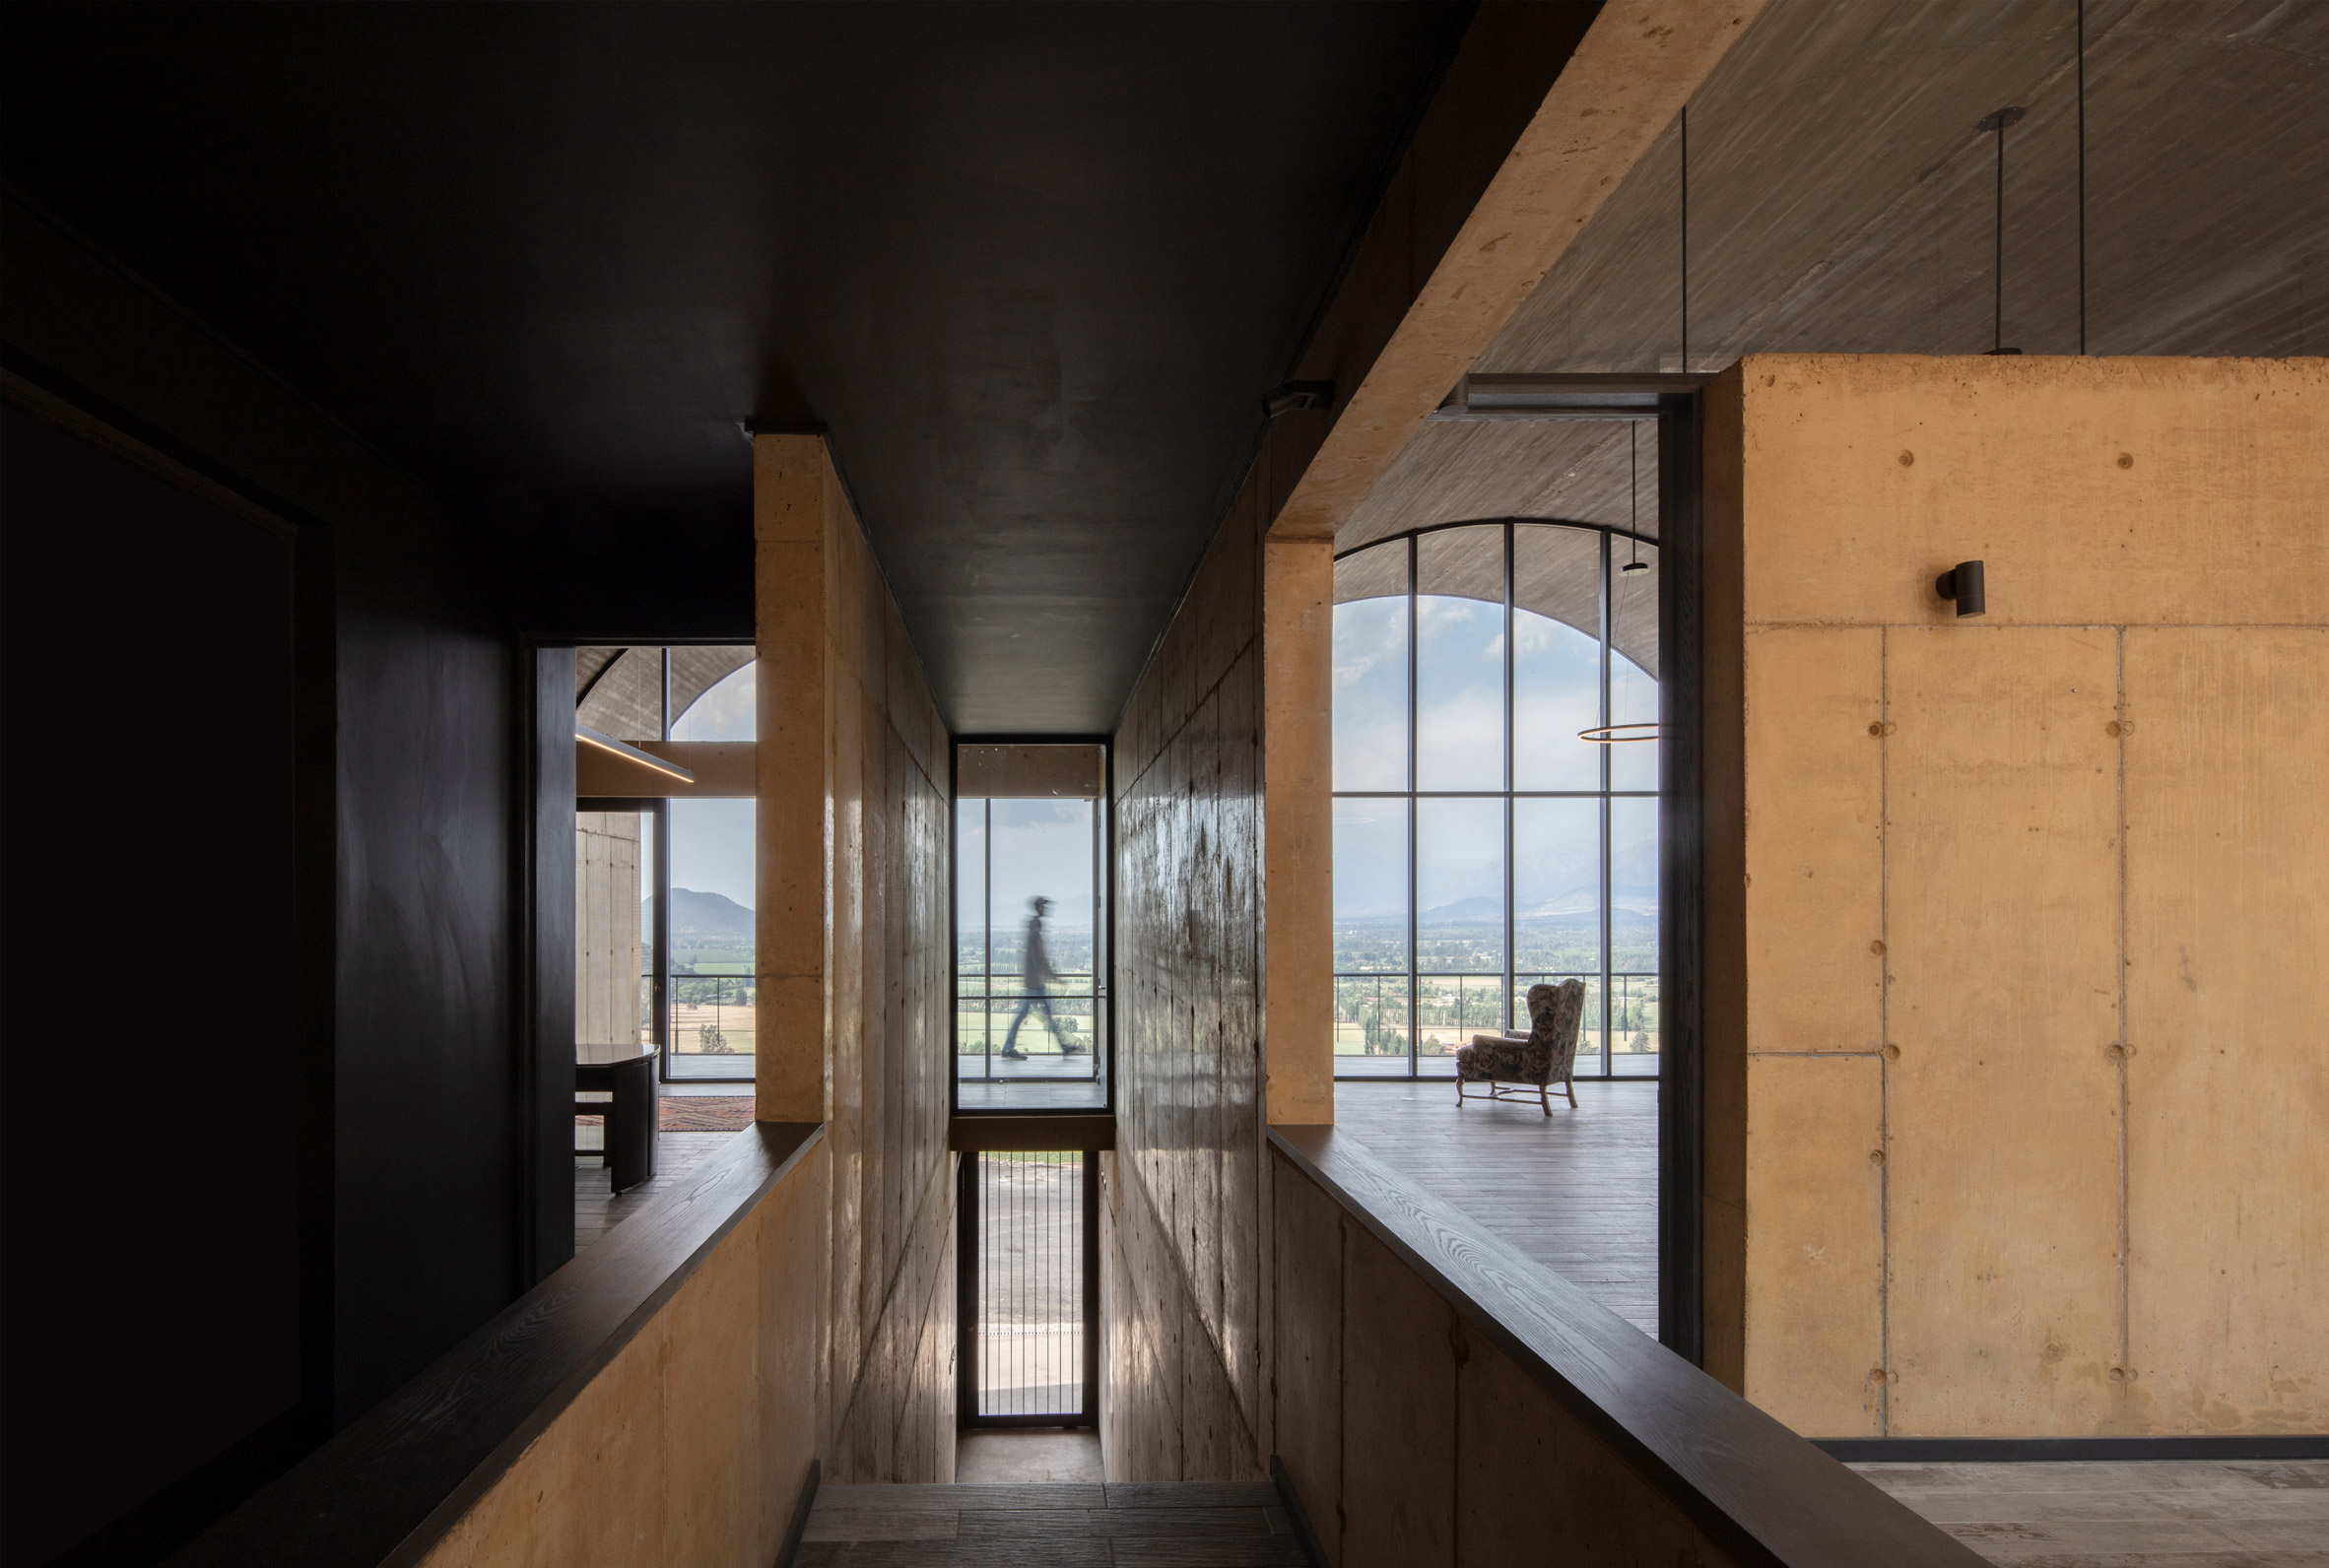 Interiors of OFMA by MAPAA in Chile